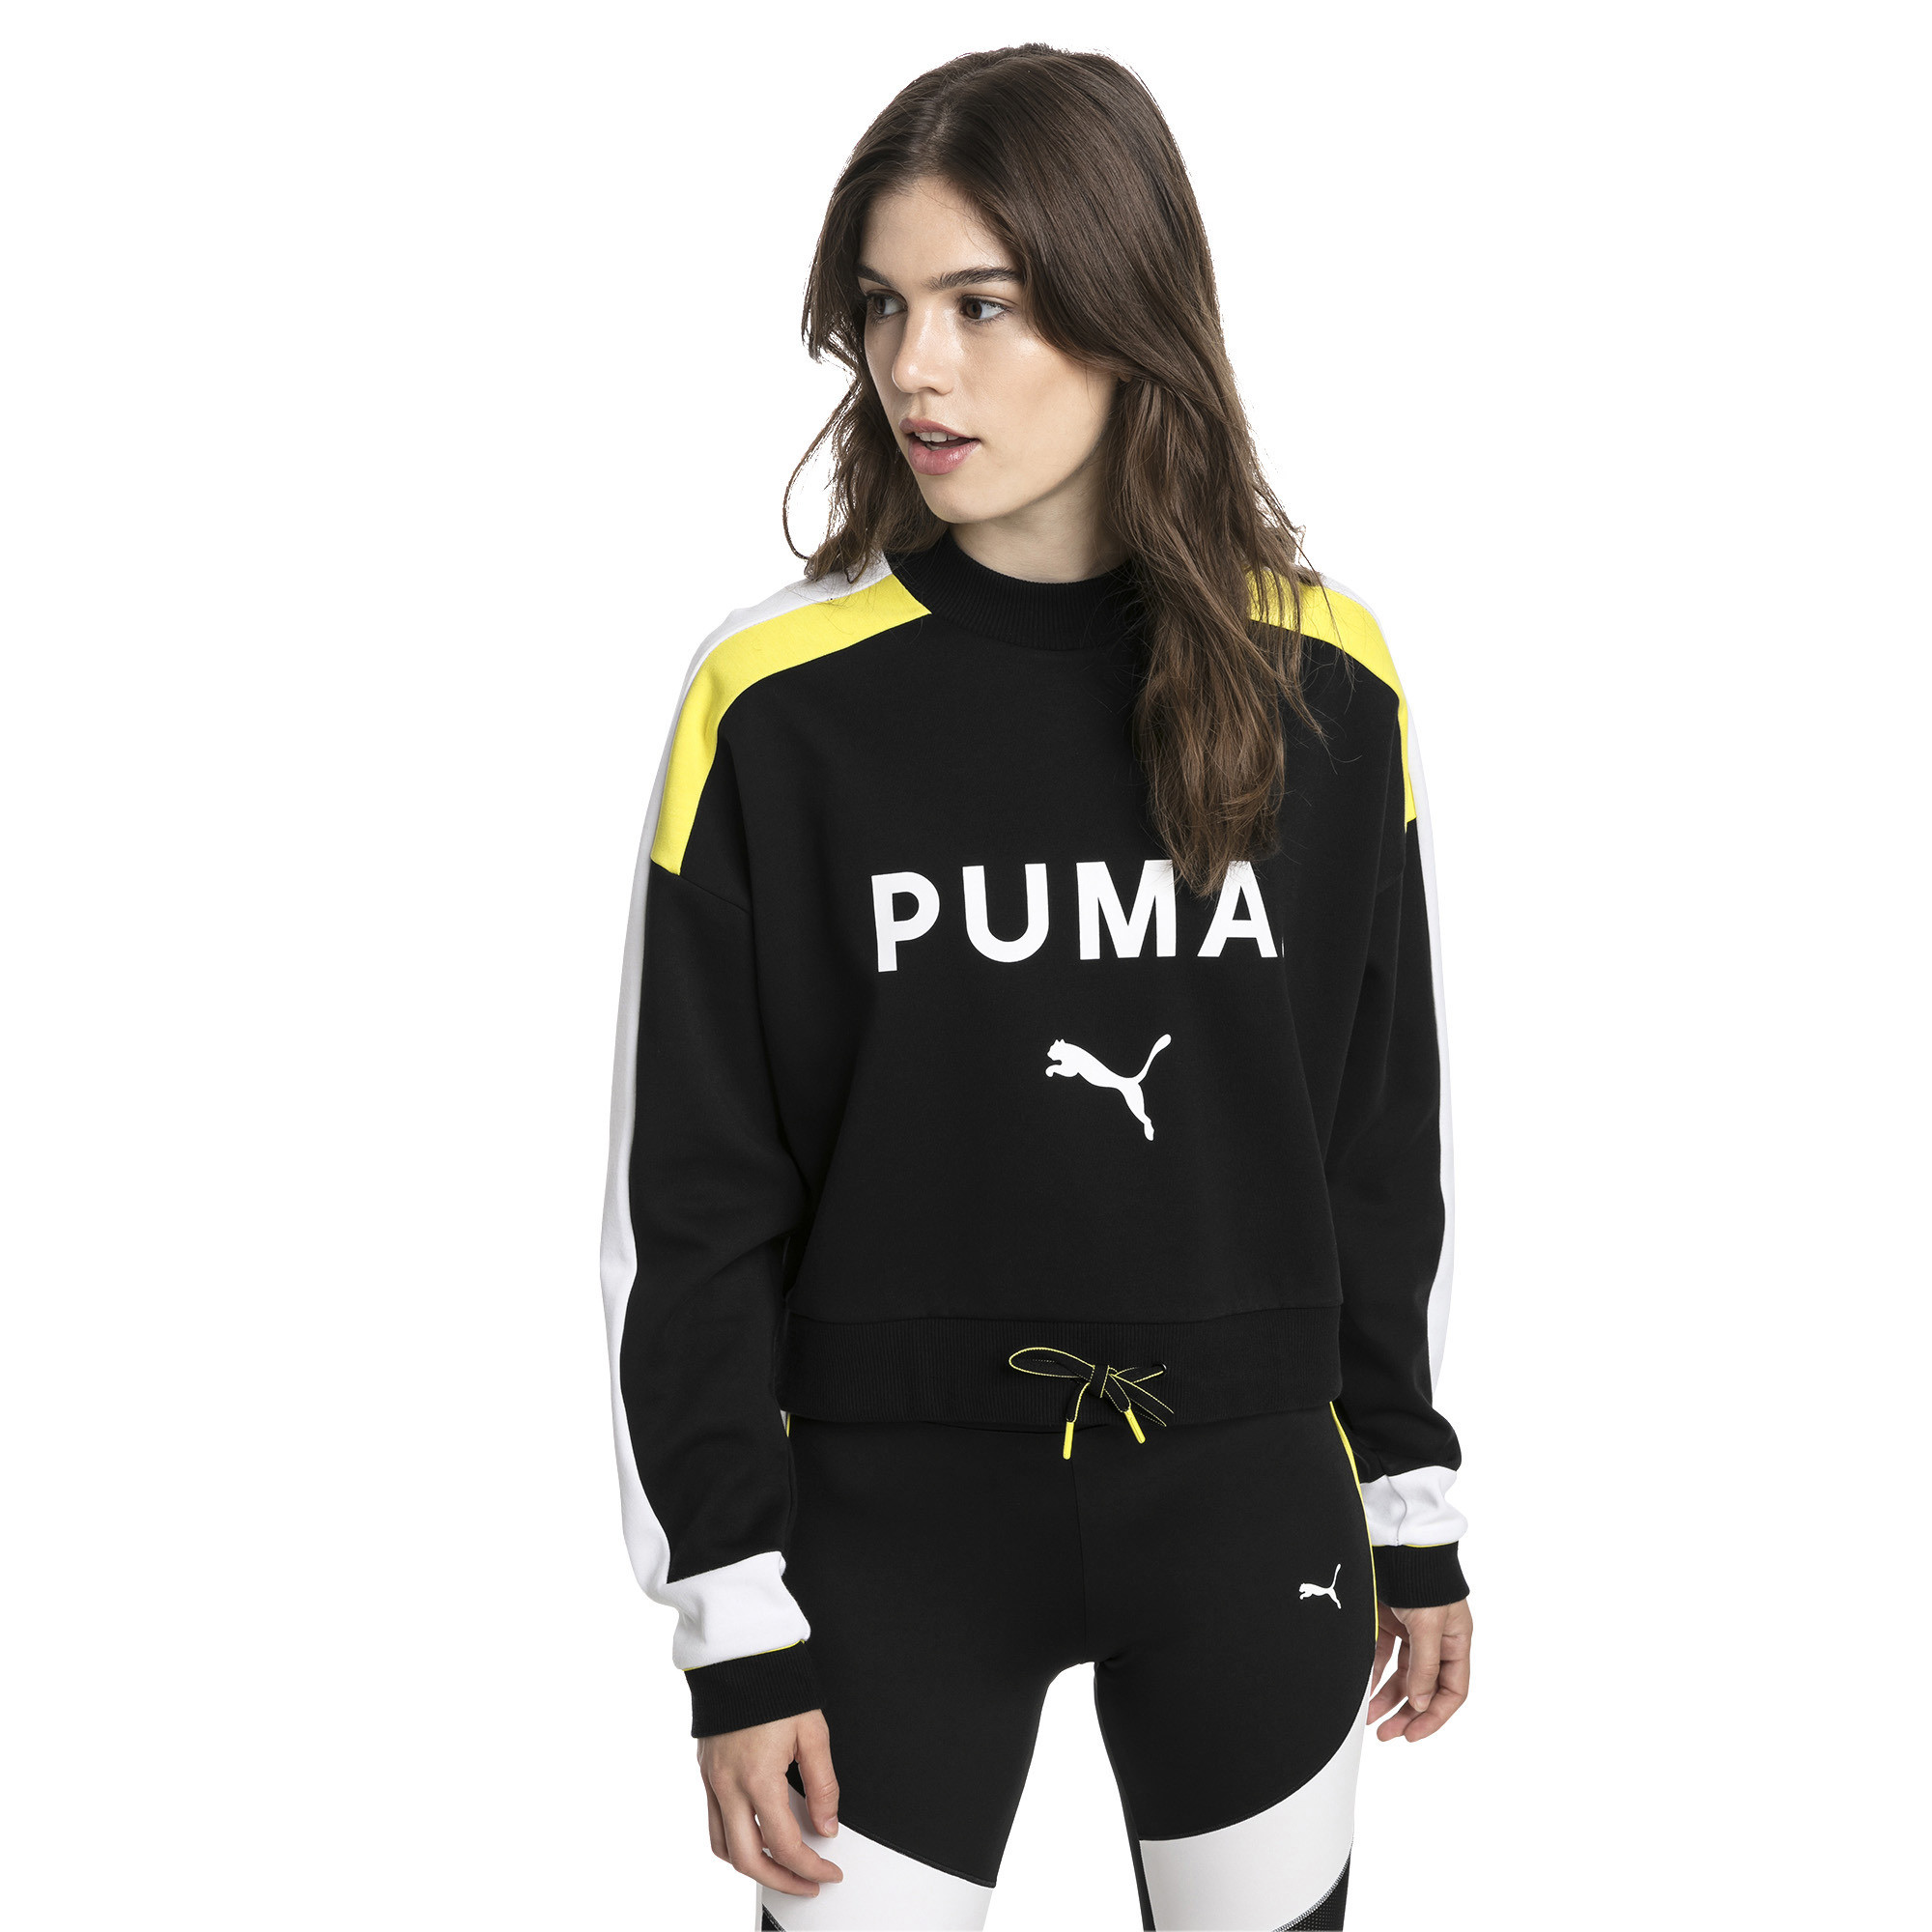 PUMA-Chase-Damen-Sweatshirt-Frauen-Sweat-Neu Indexbild 4